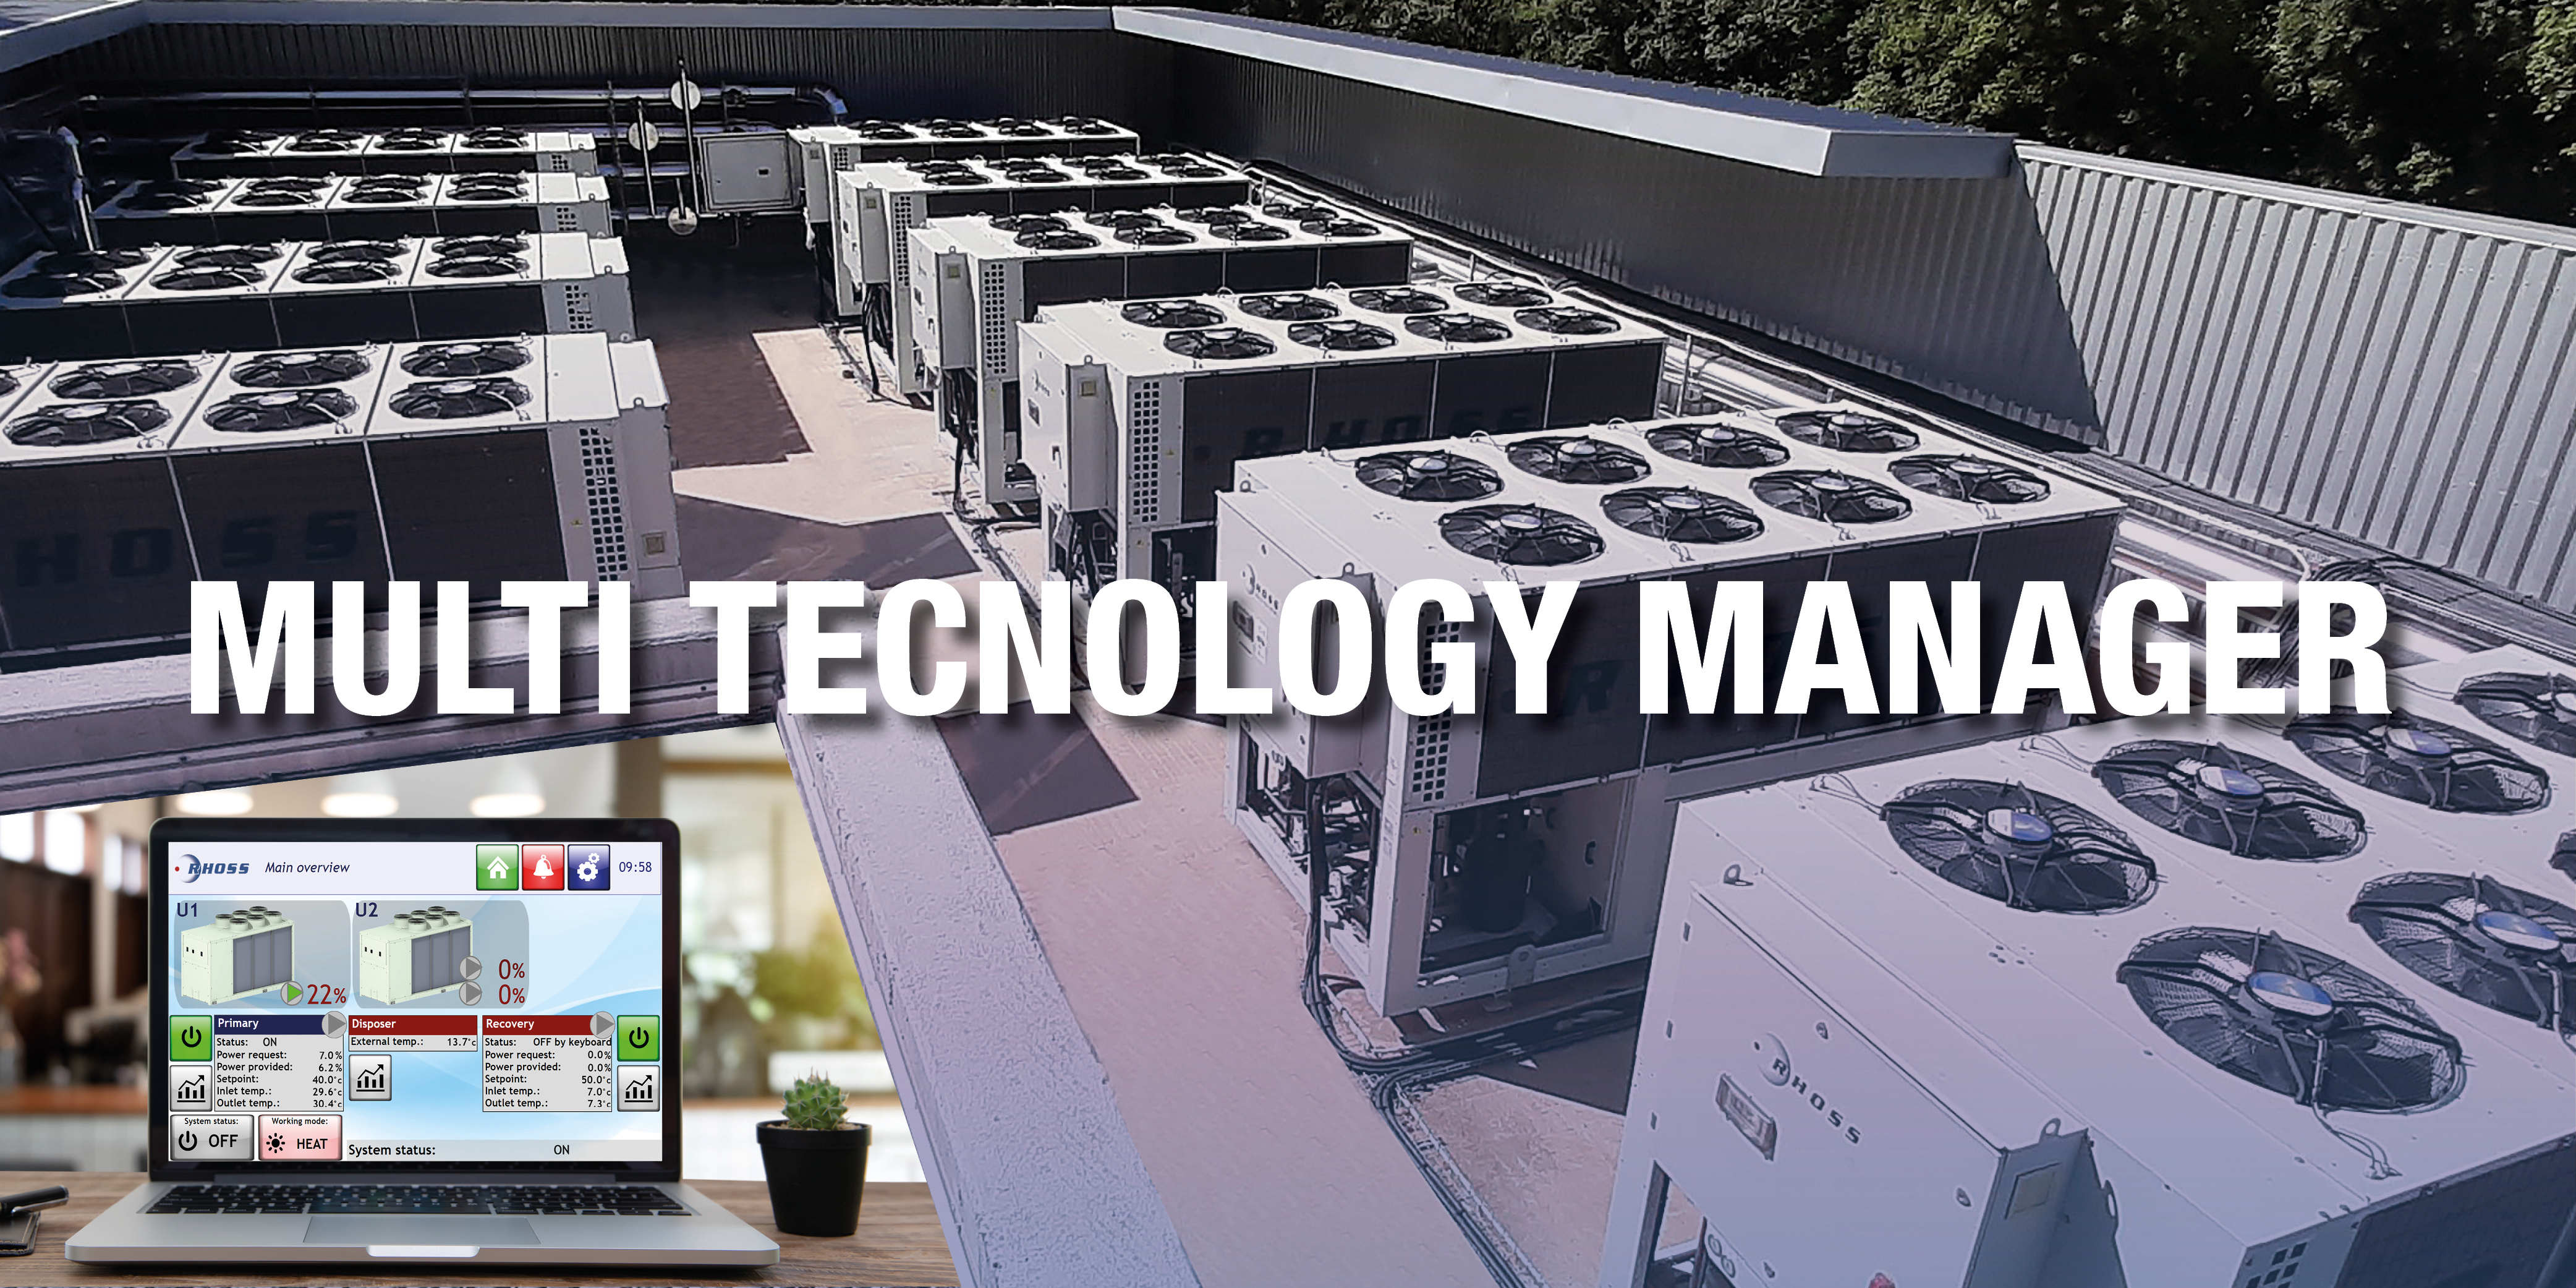 MTM MULTI TECNOLOGY MANAGER